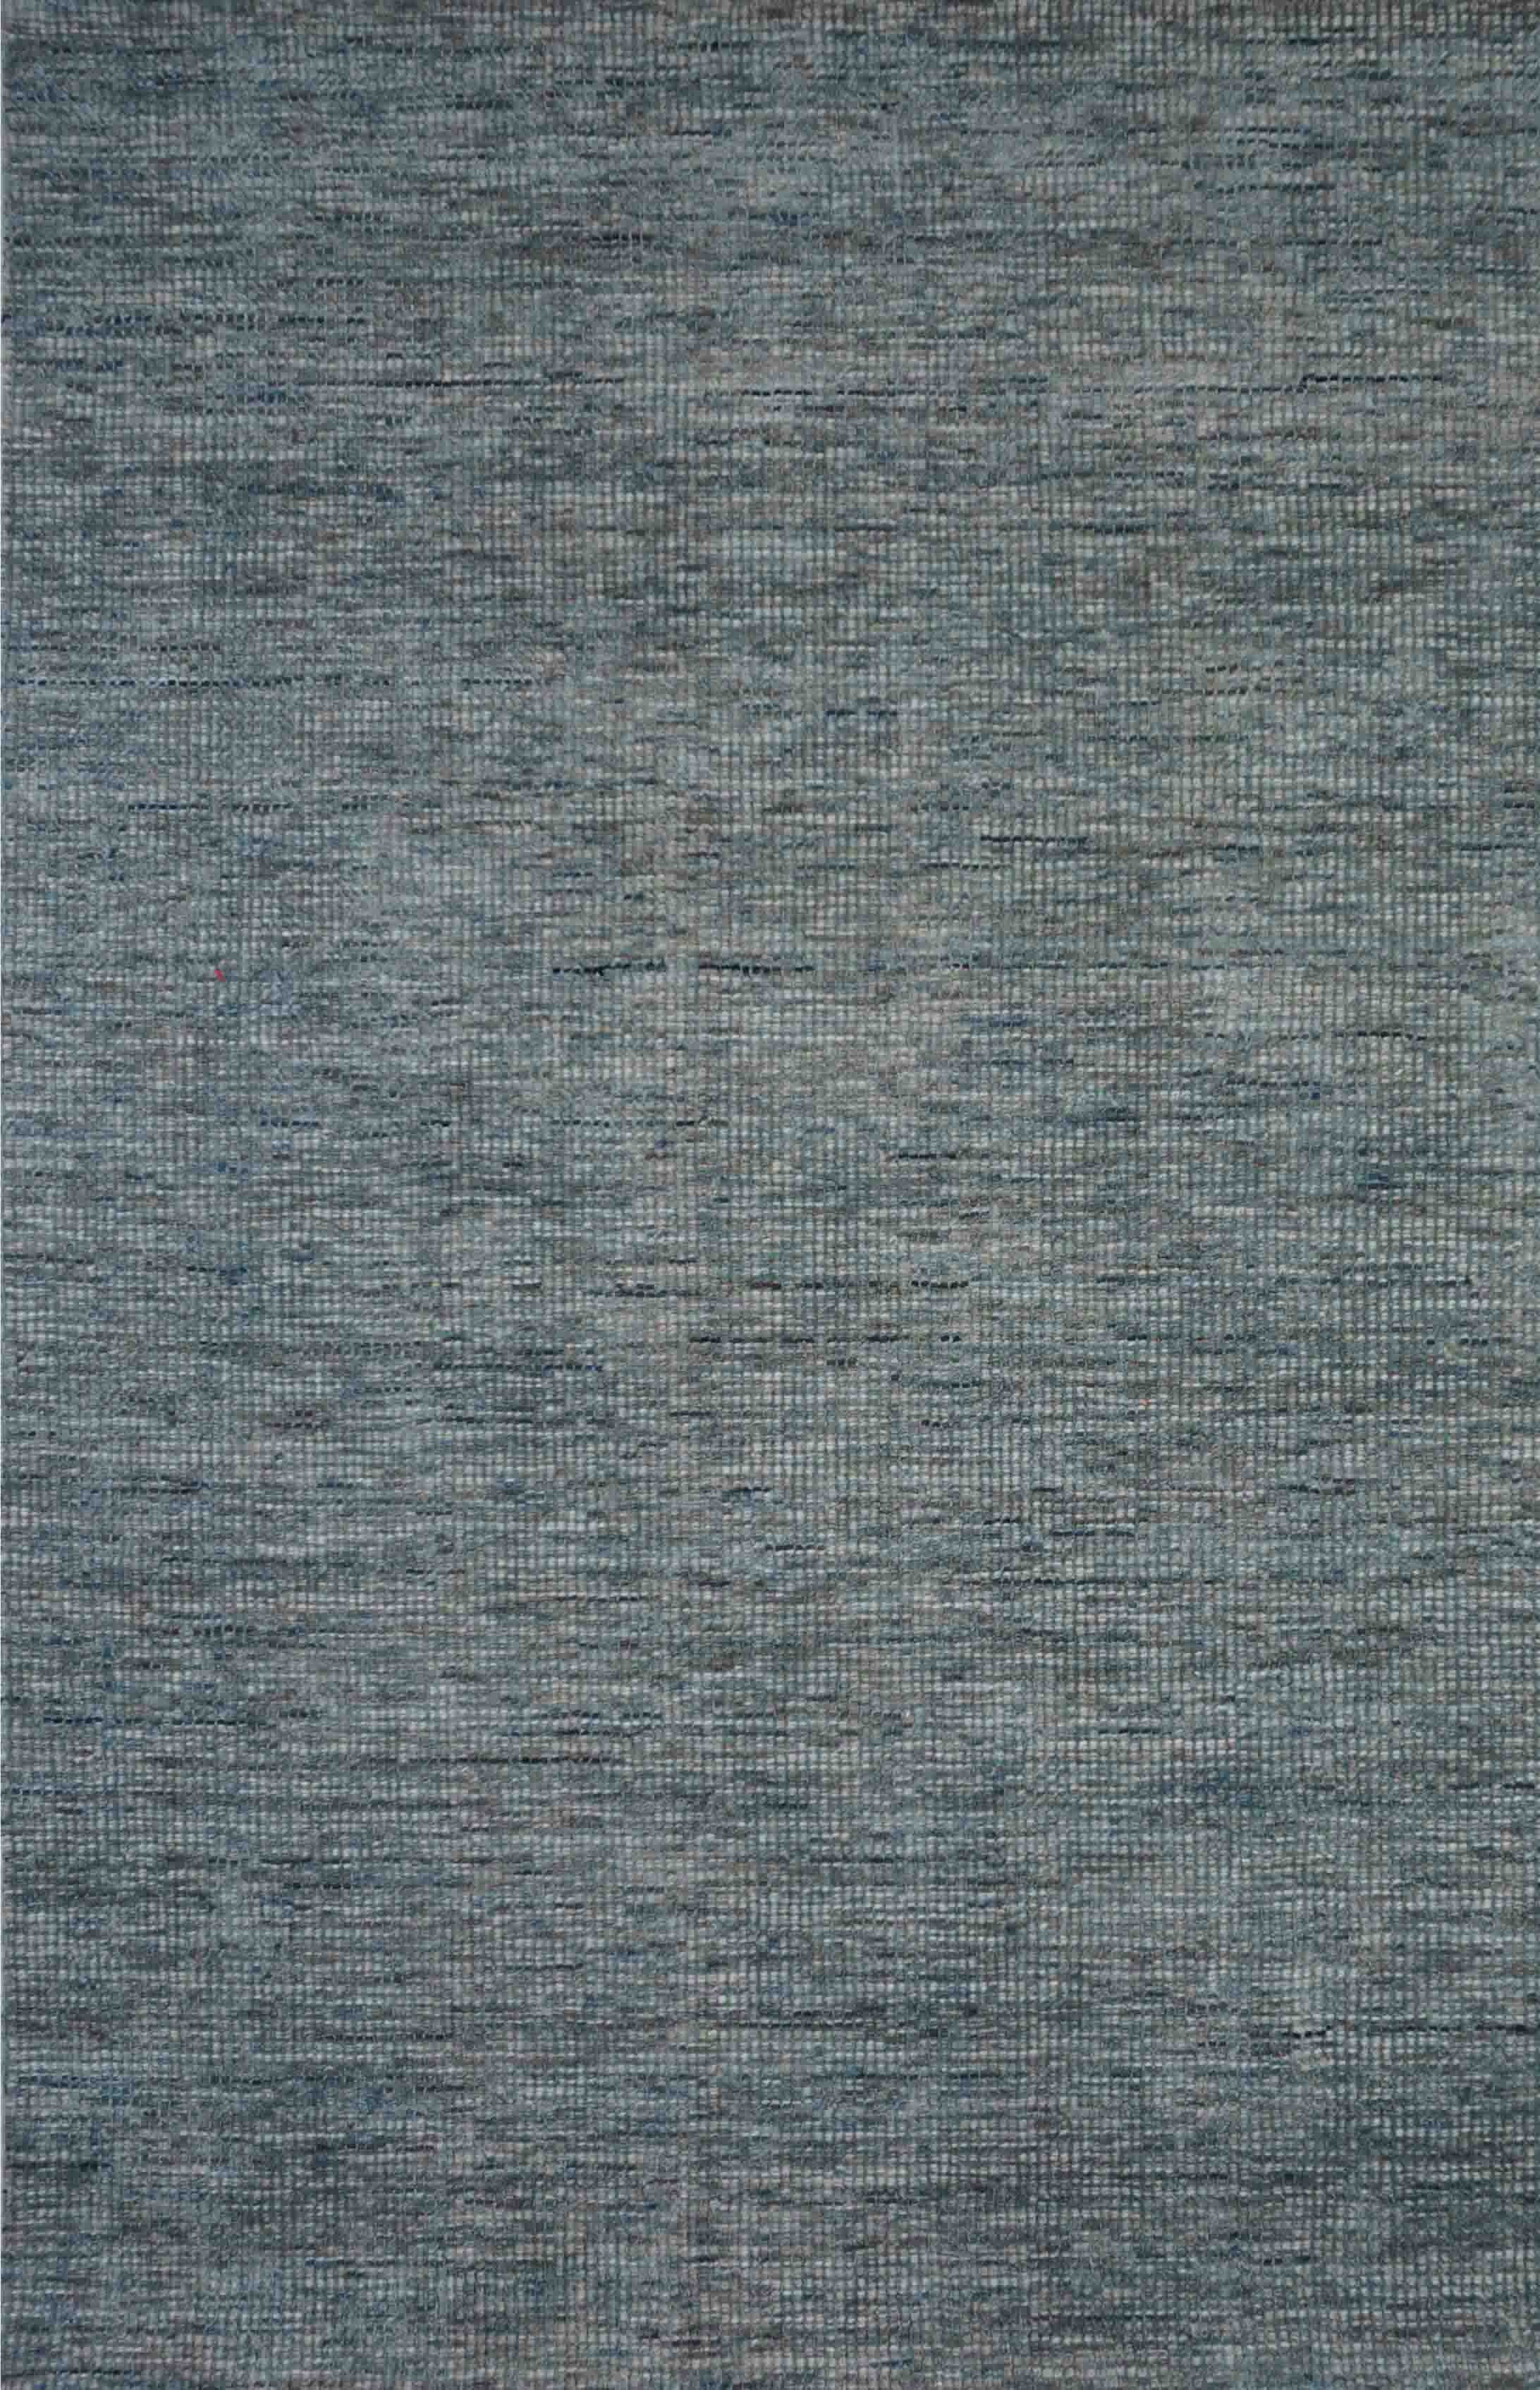 TEXTURED HAND TUFTED RUG